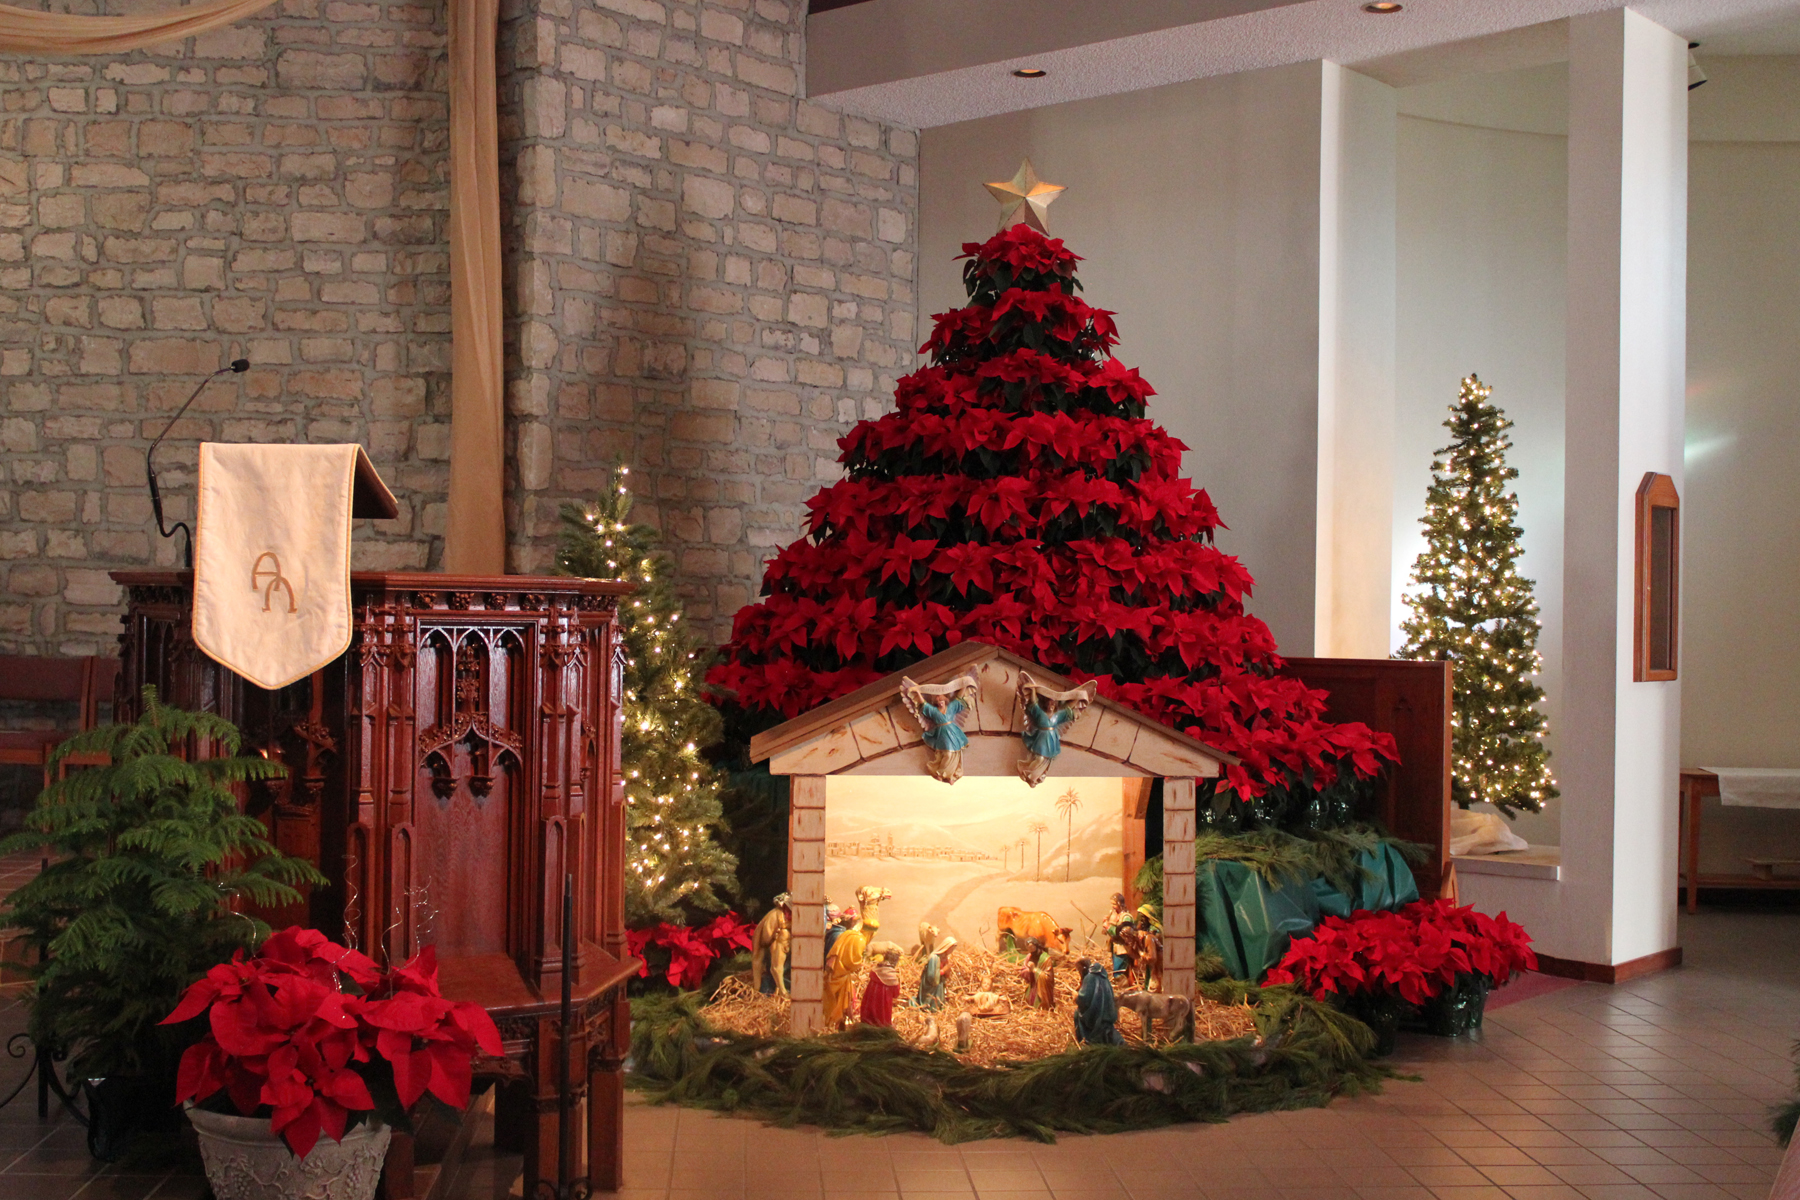 nativity inspired classic decor - Christmas Church Decoration Ideas